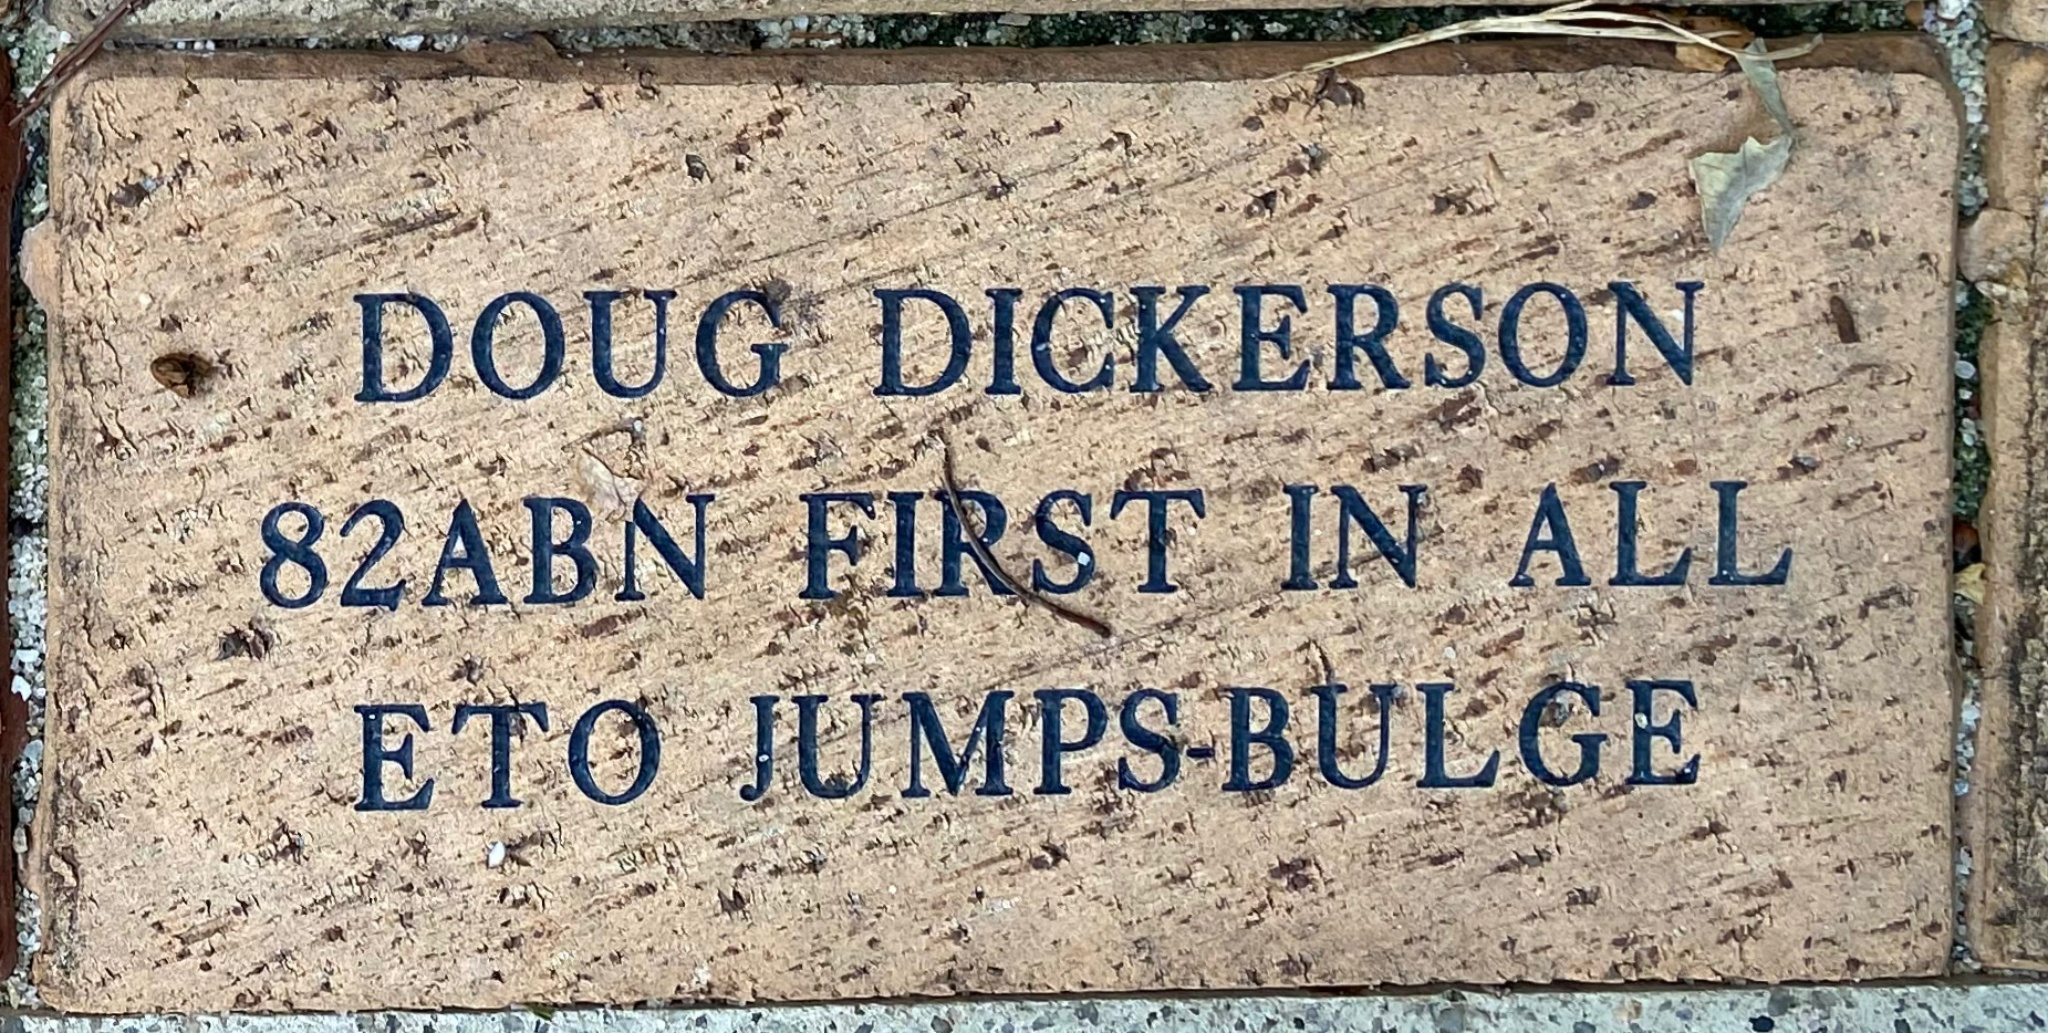 DOUG DICKERSON 82ABN FIRST IN ALL ETO JUMPS –BULGE